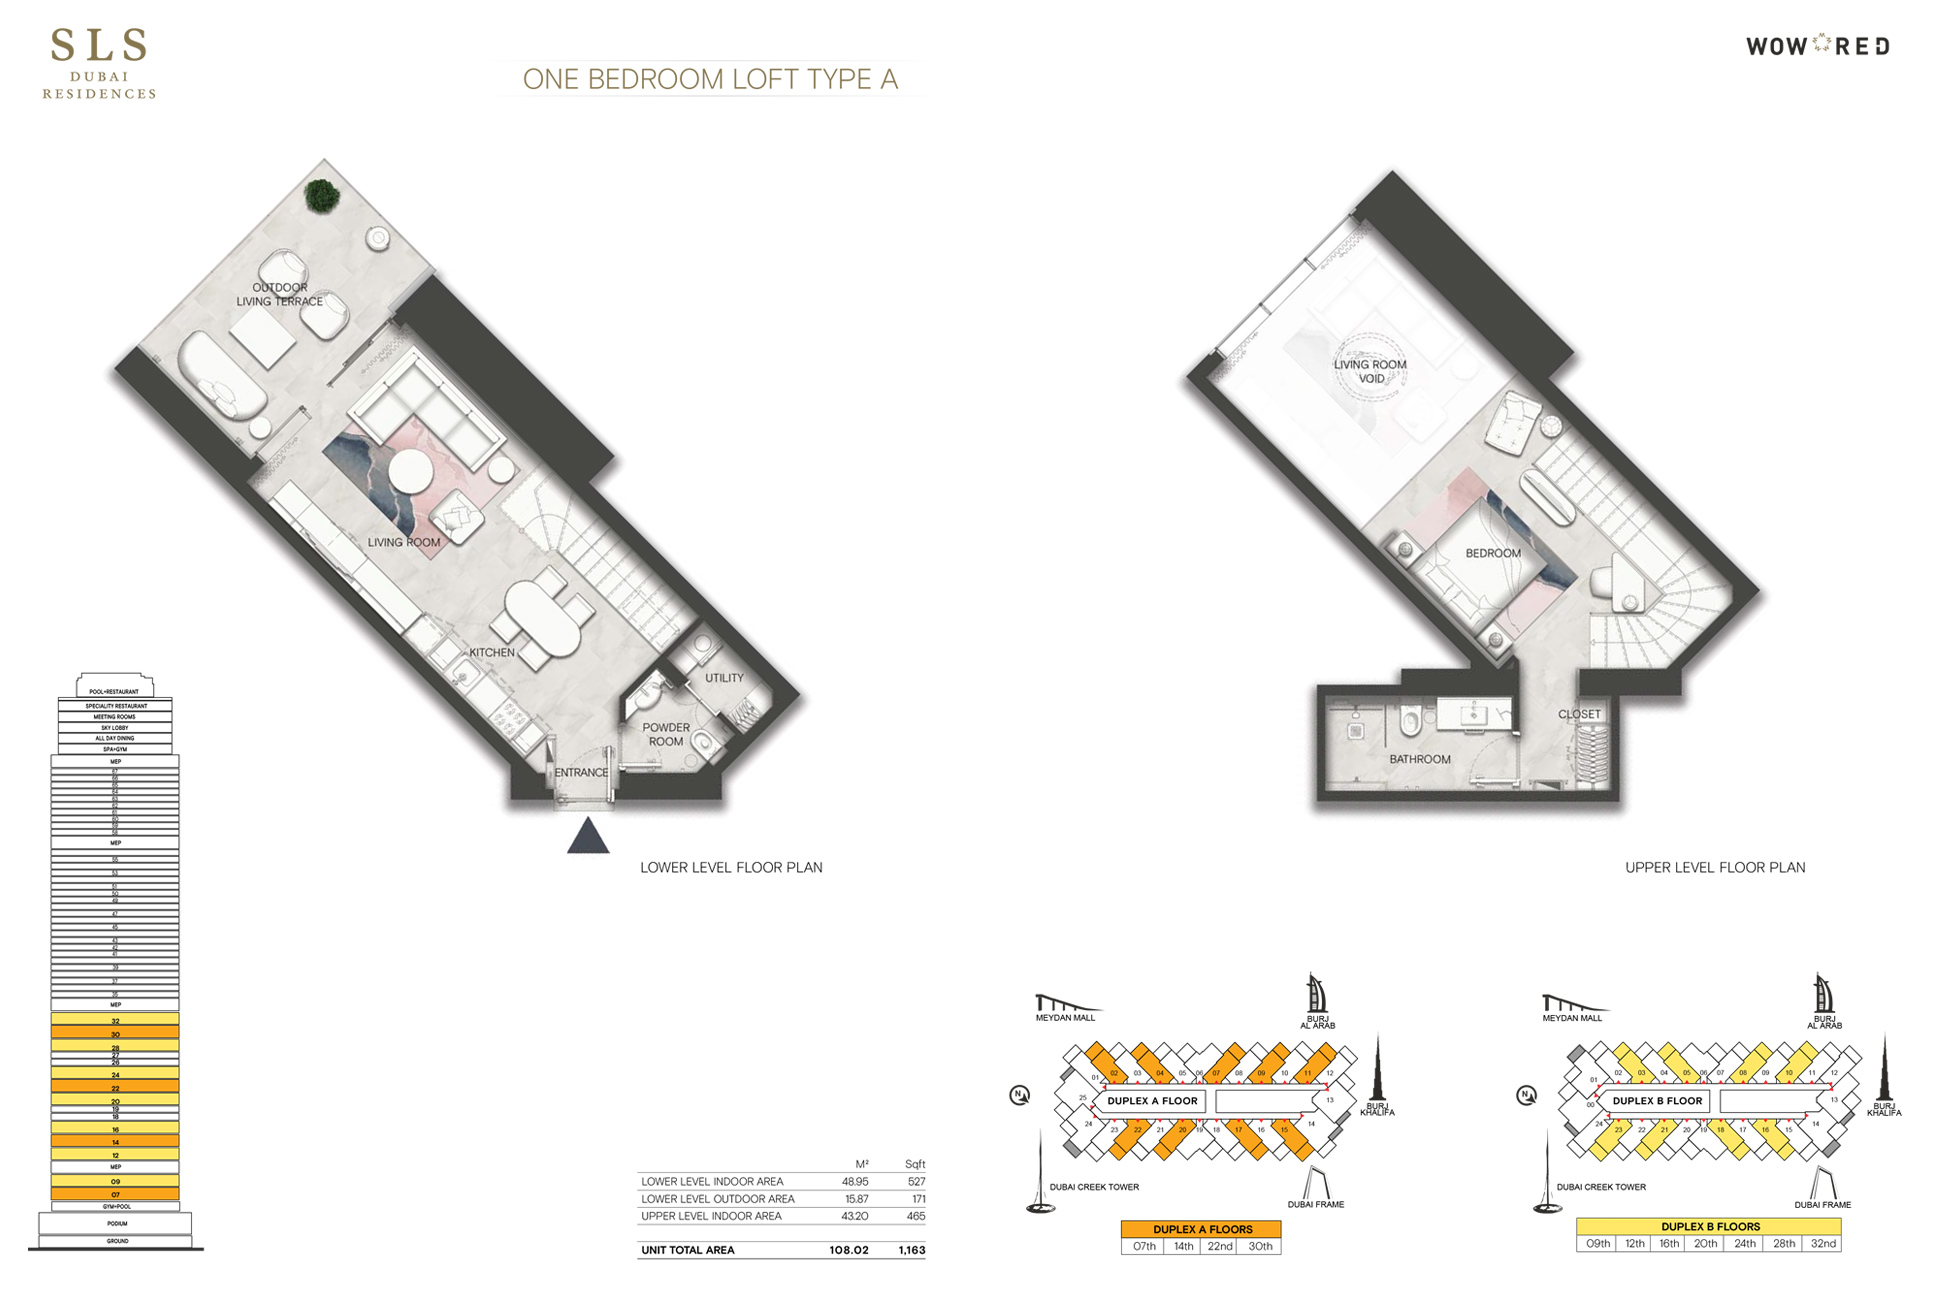 SLS Residences 1 Bedroom Loft Type A